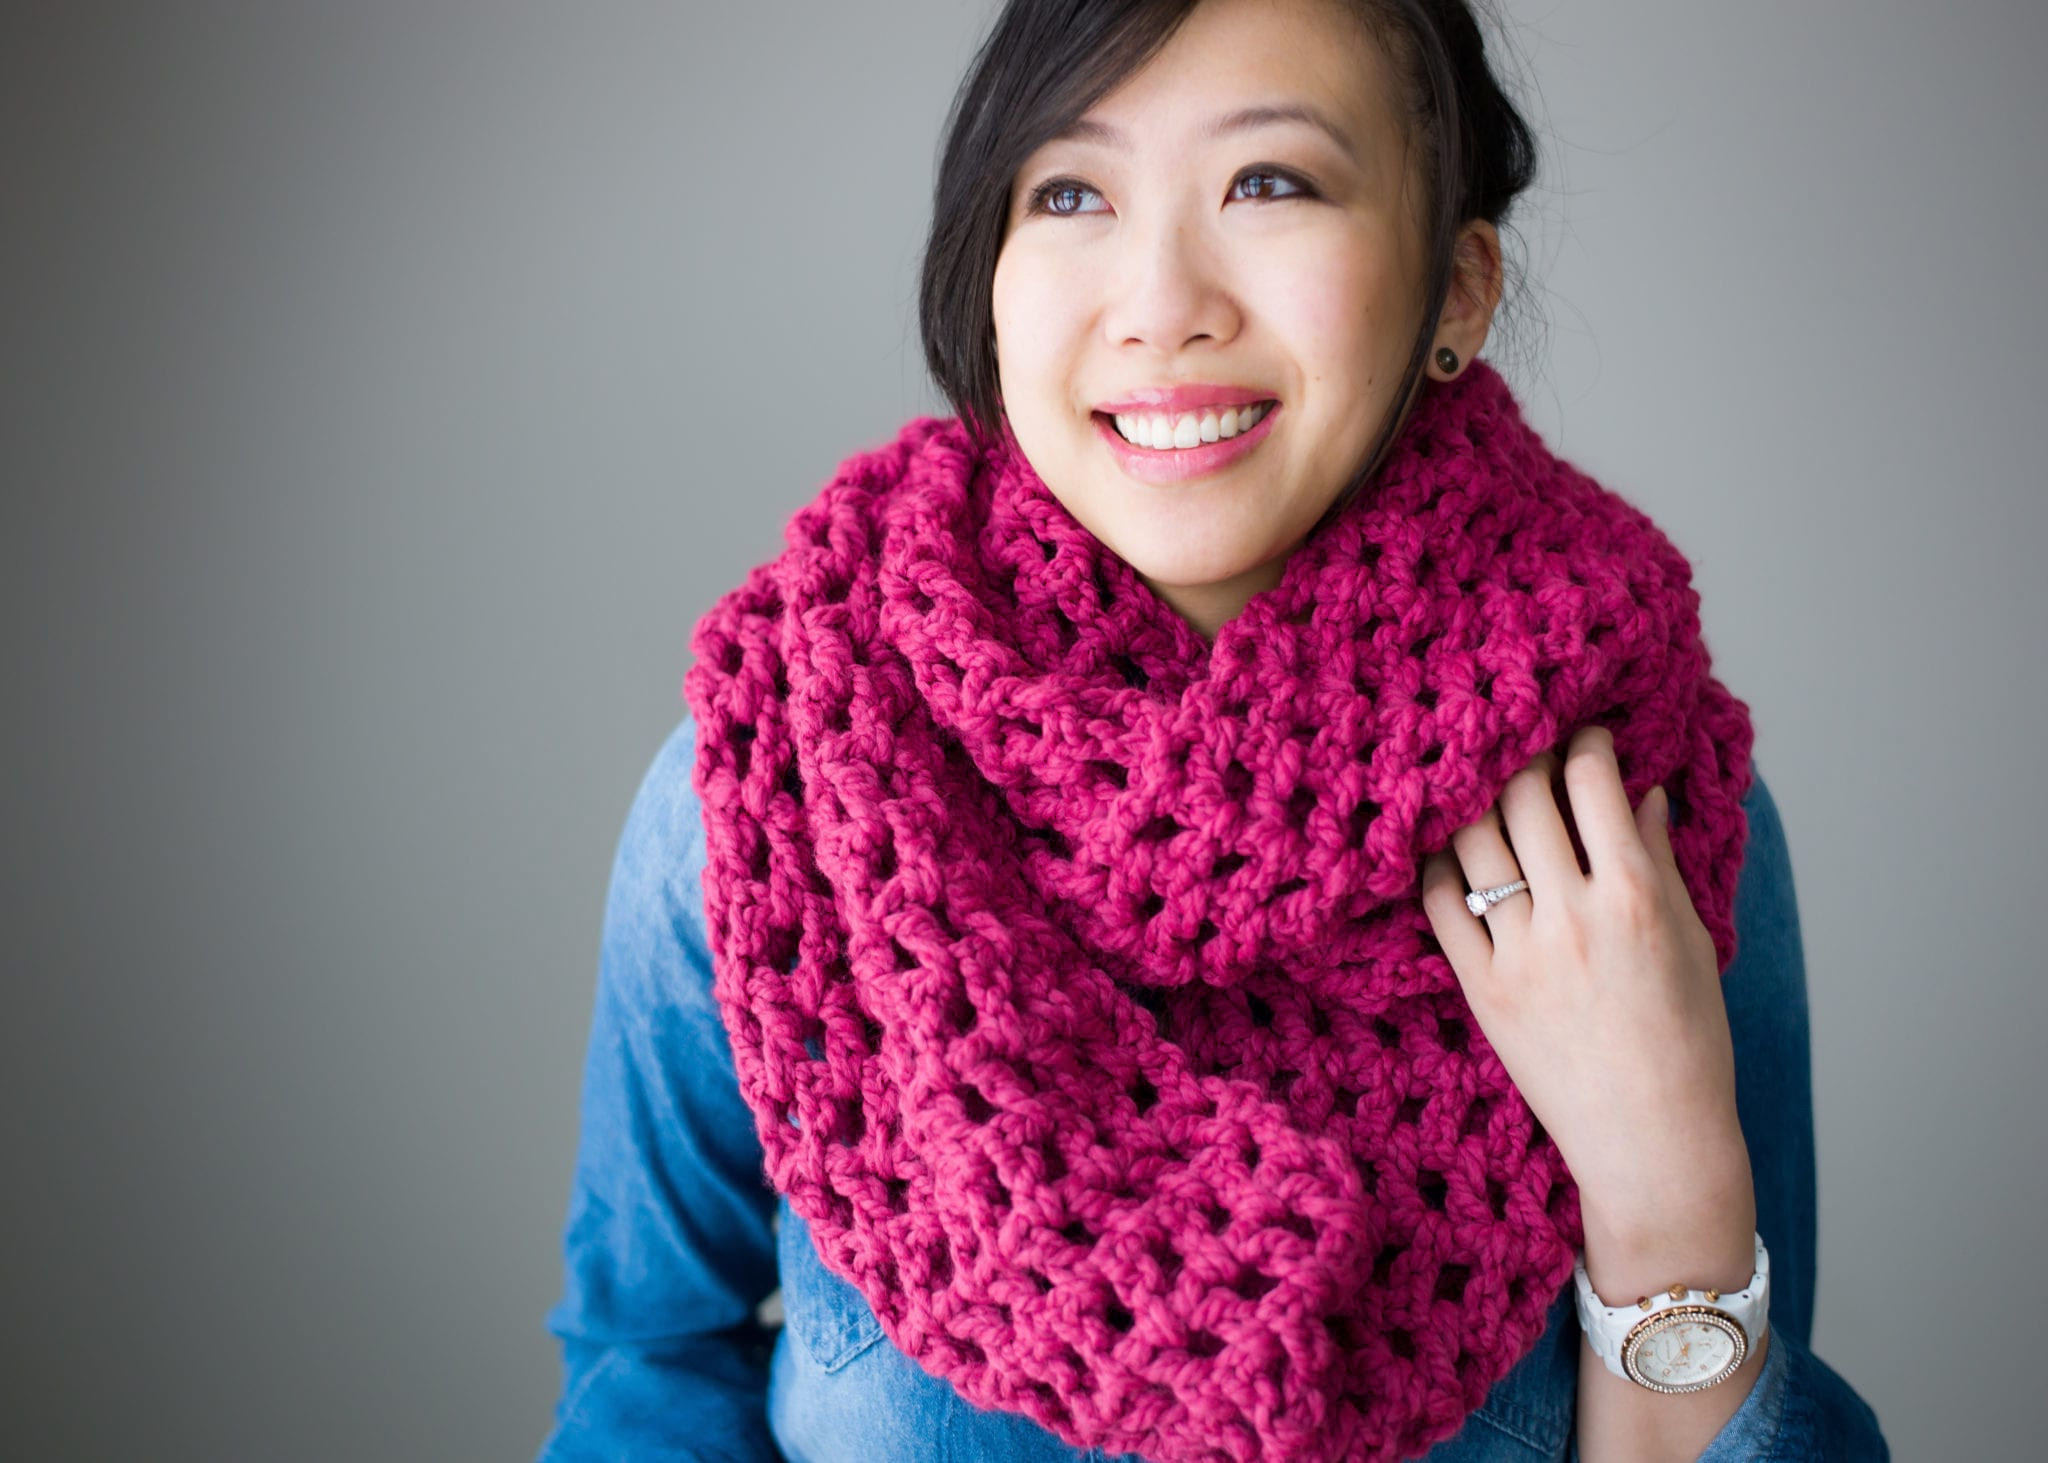 New Long Double Crochet Cowl All About Ami Free Crochet Cowl Patterns Of Marvelous 40 Images Free Crochet Cowl Patterns